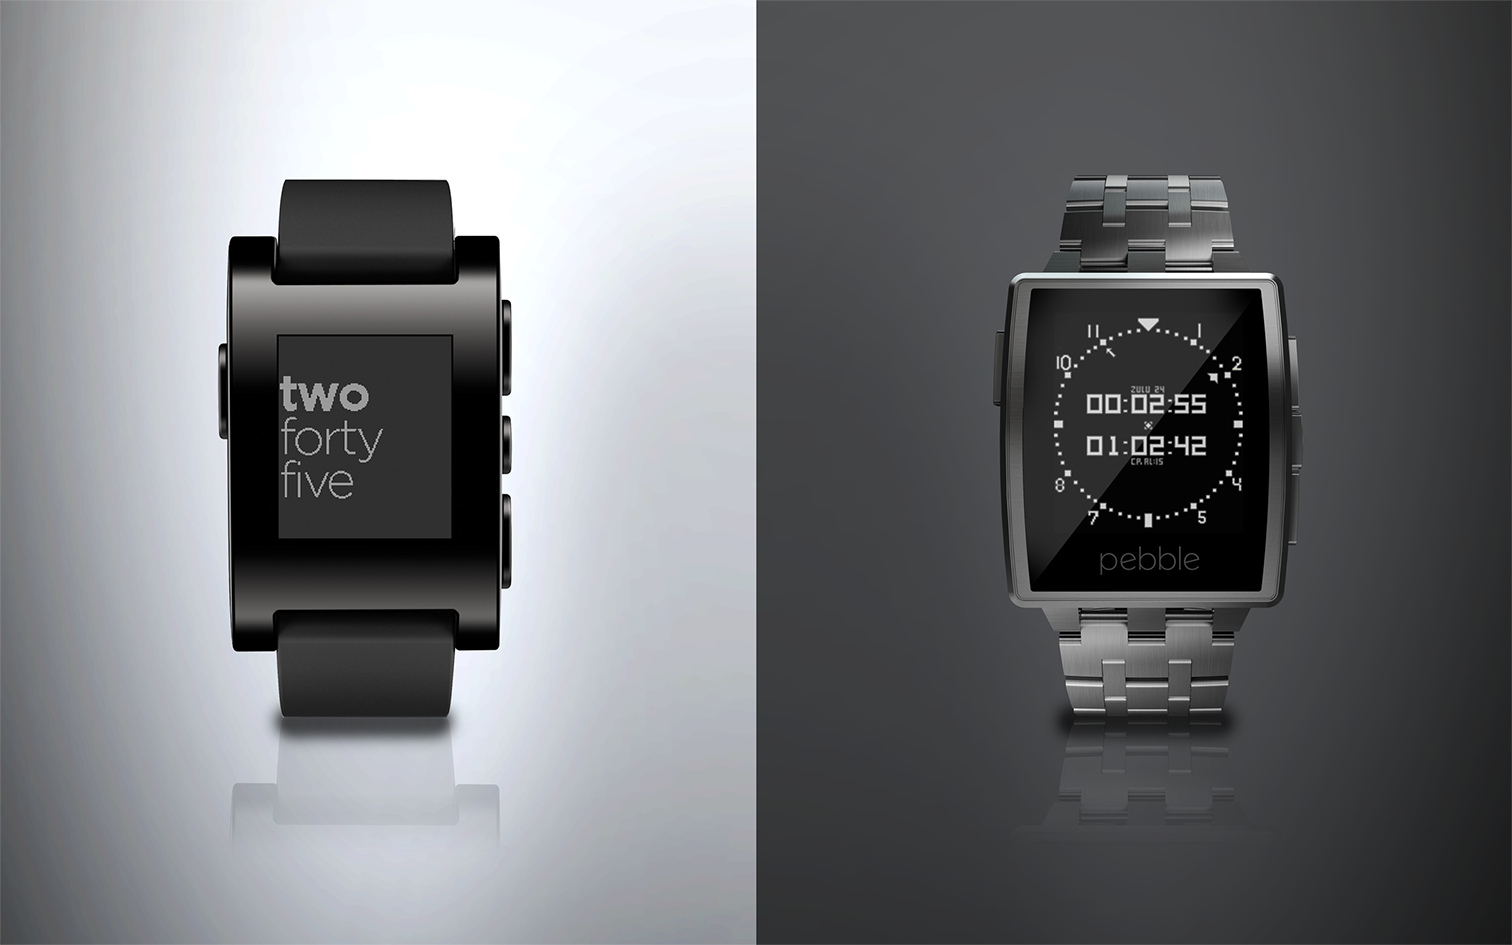 Top 5 Best Smartwatches for Fall 2014